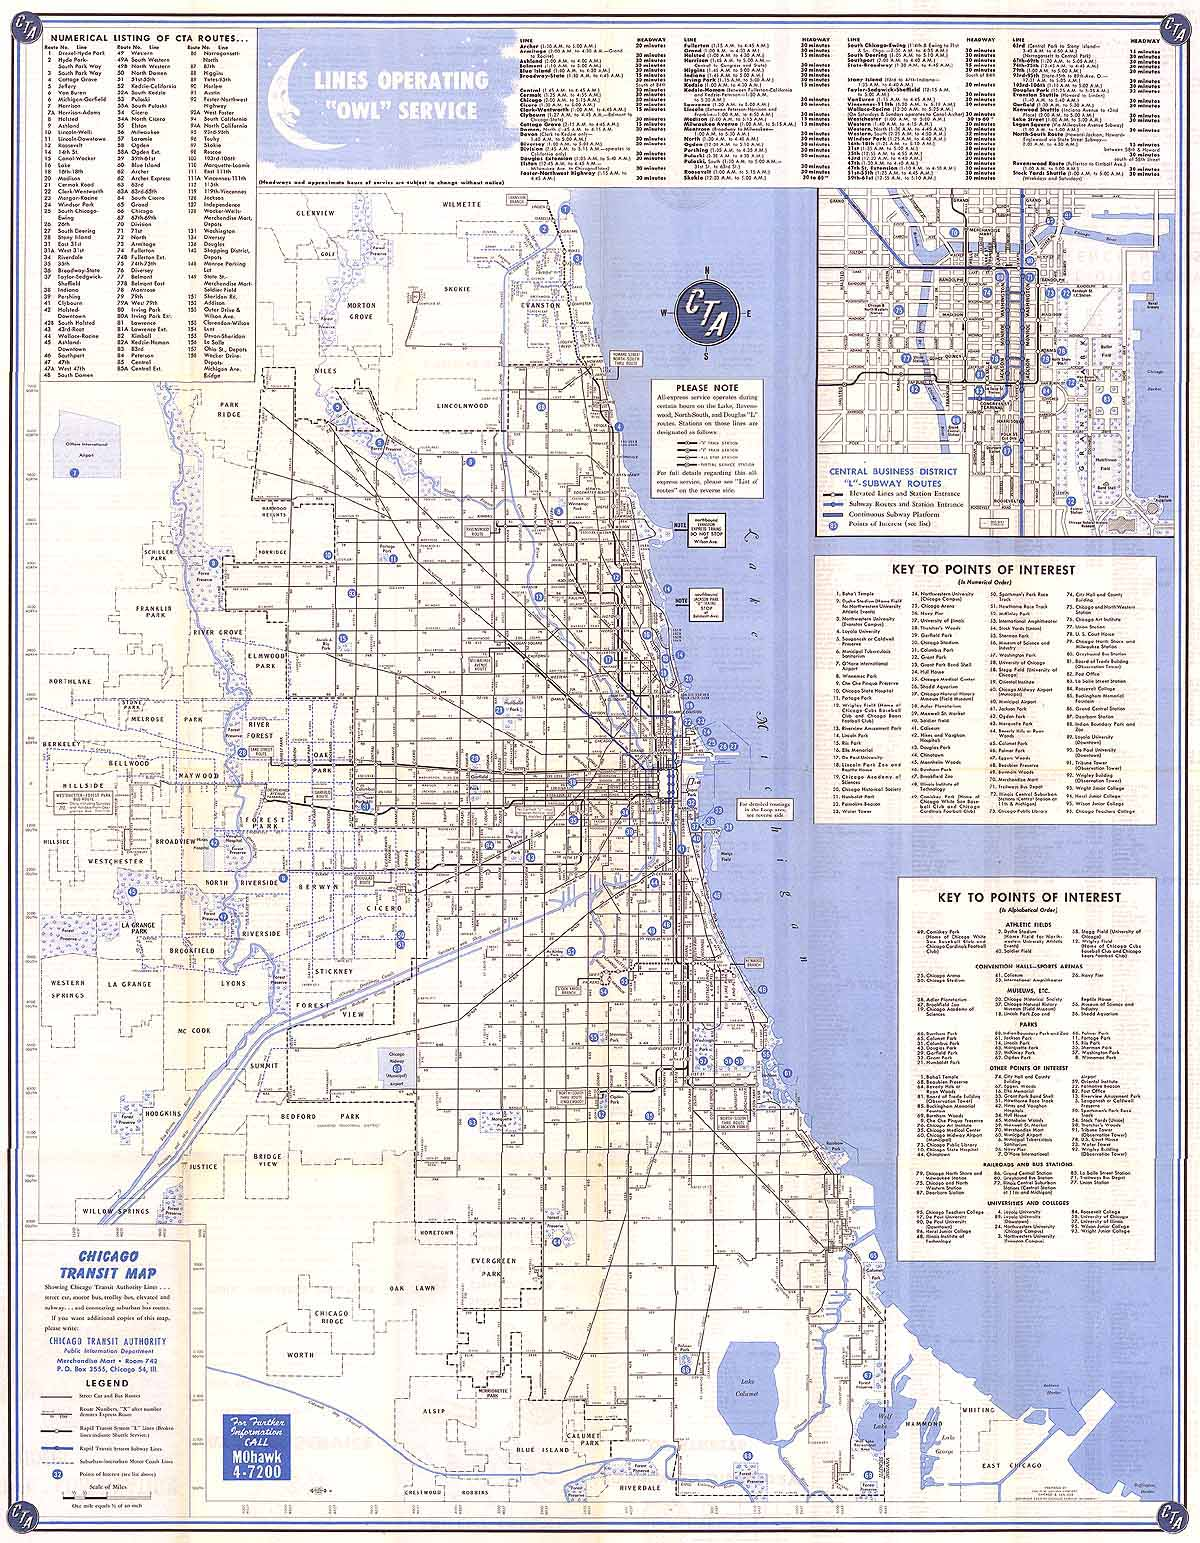 Chicago ''L''.org: System Maps - Route Maps on